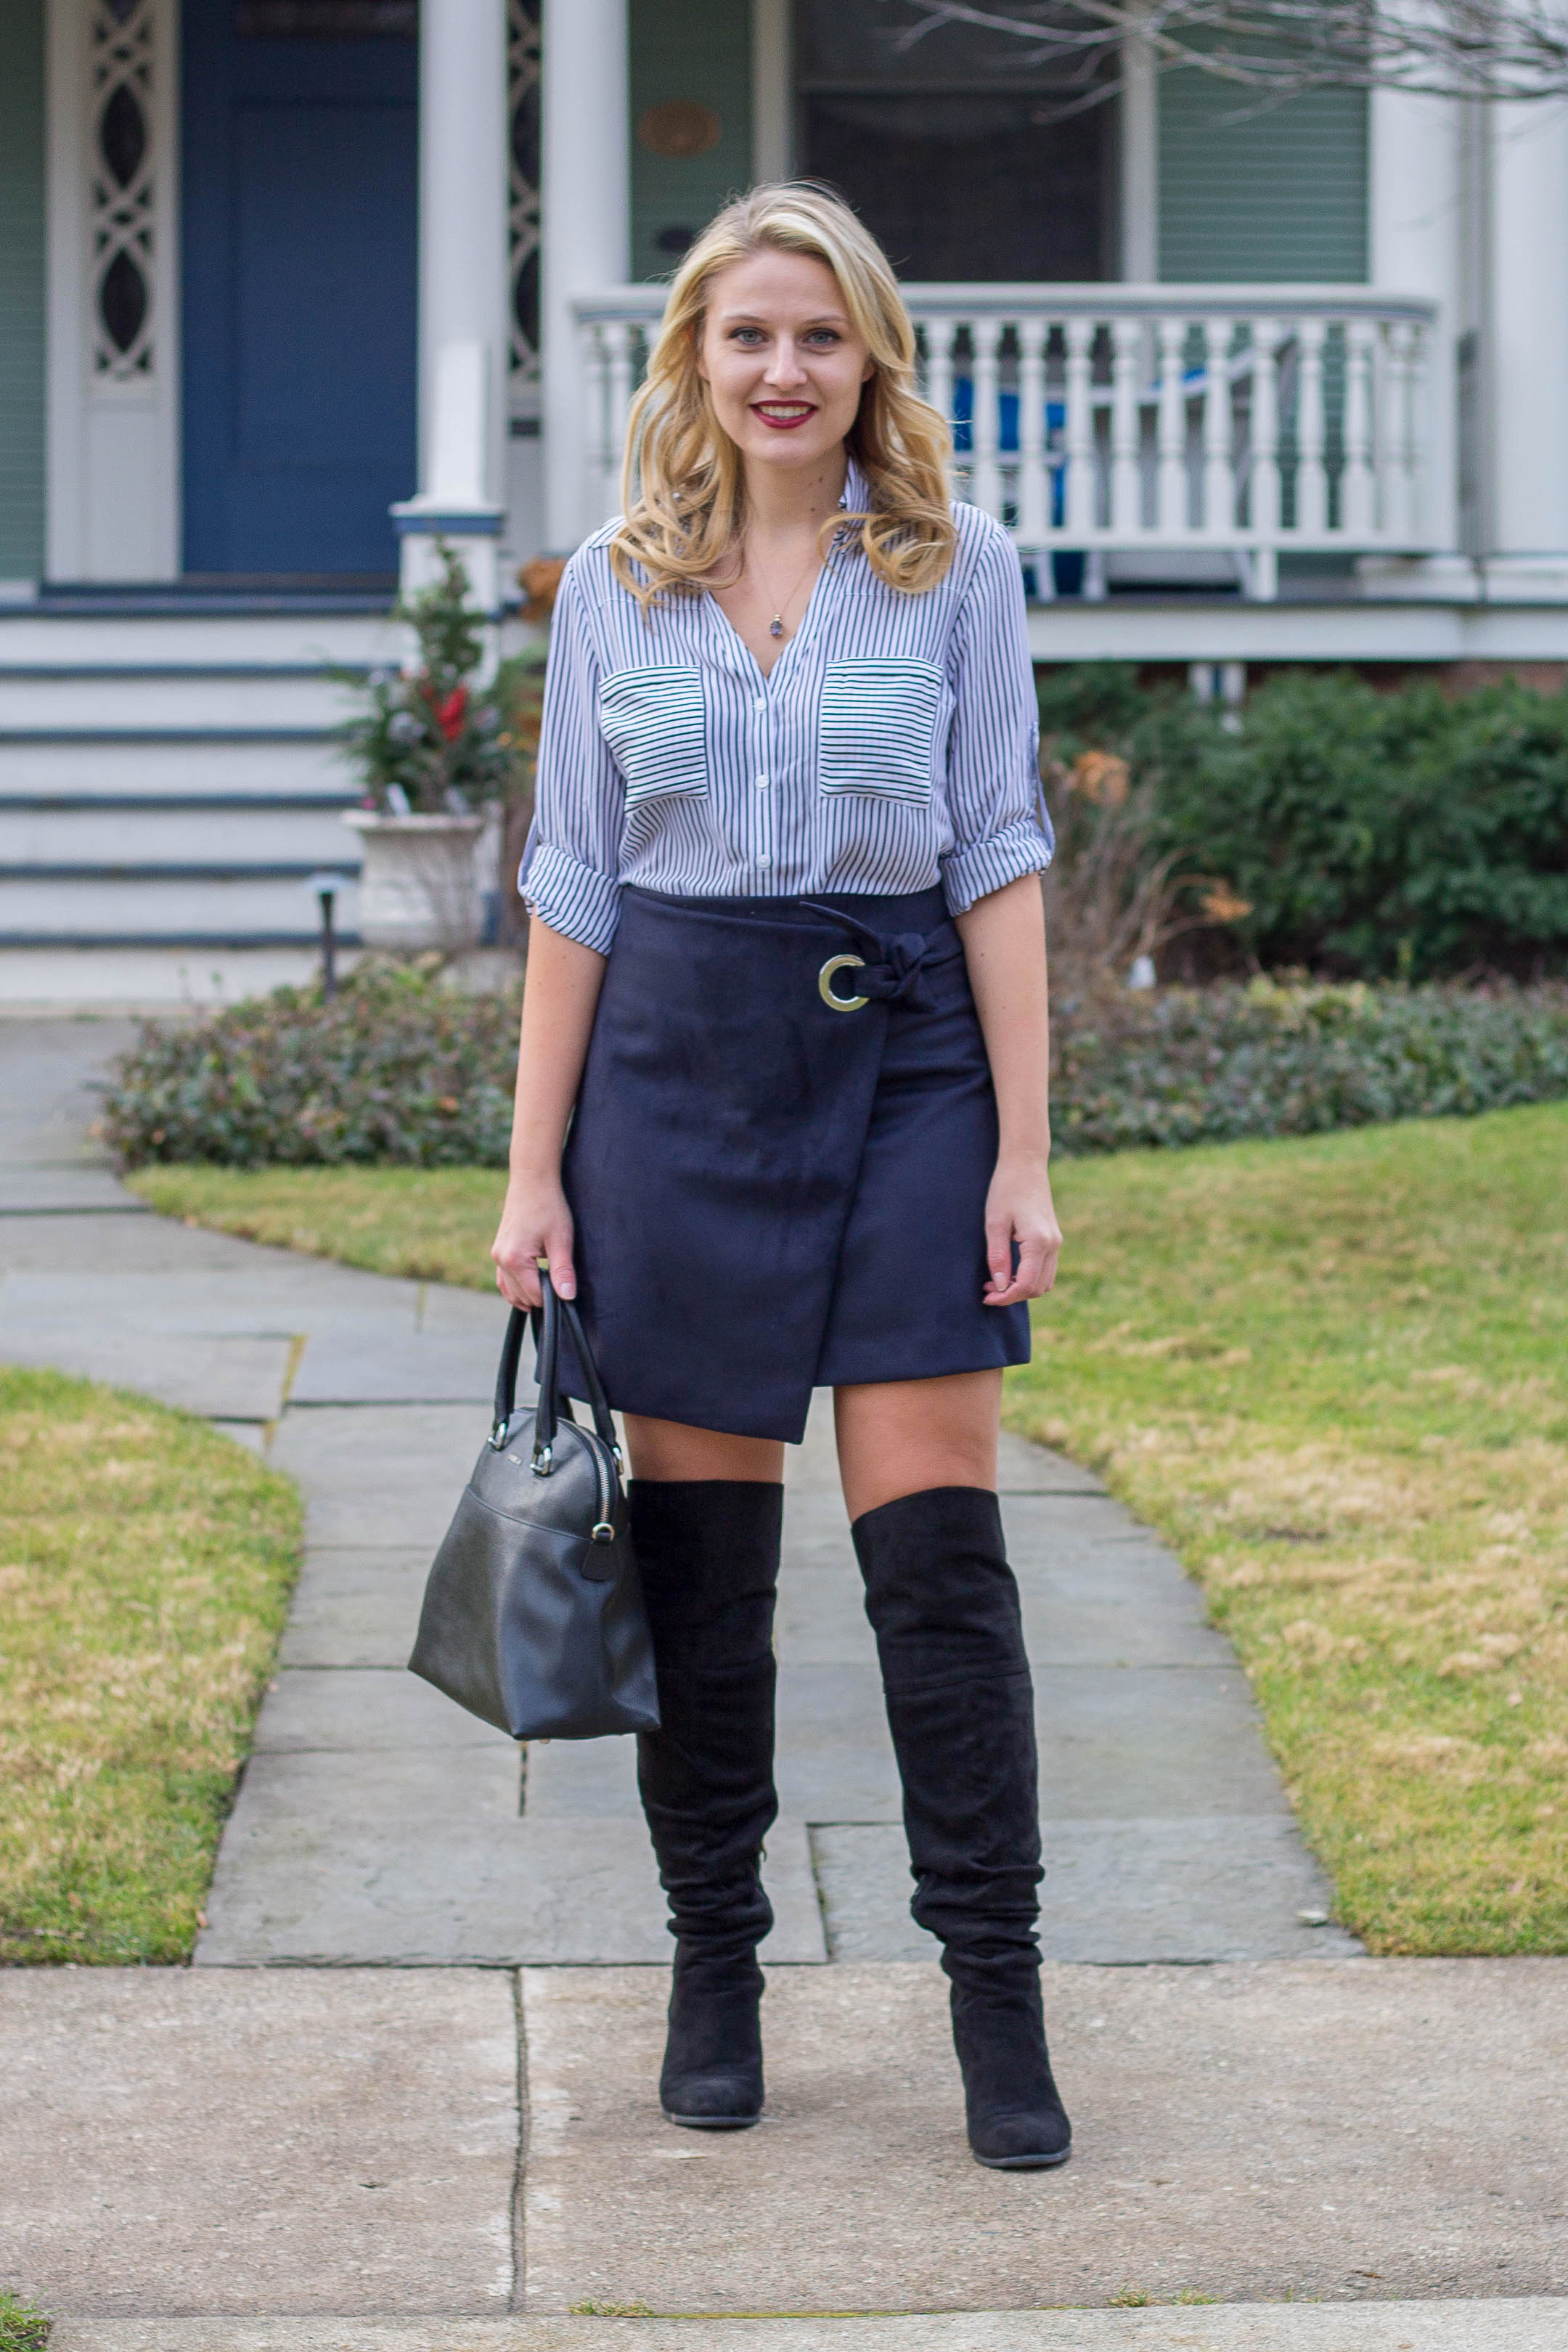 A winter workplace outfit featuring a faux suede wrap skirt